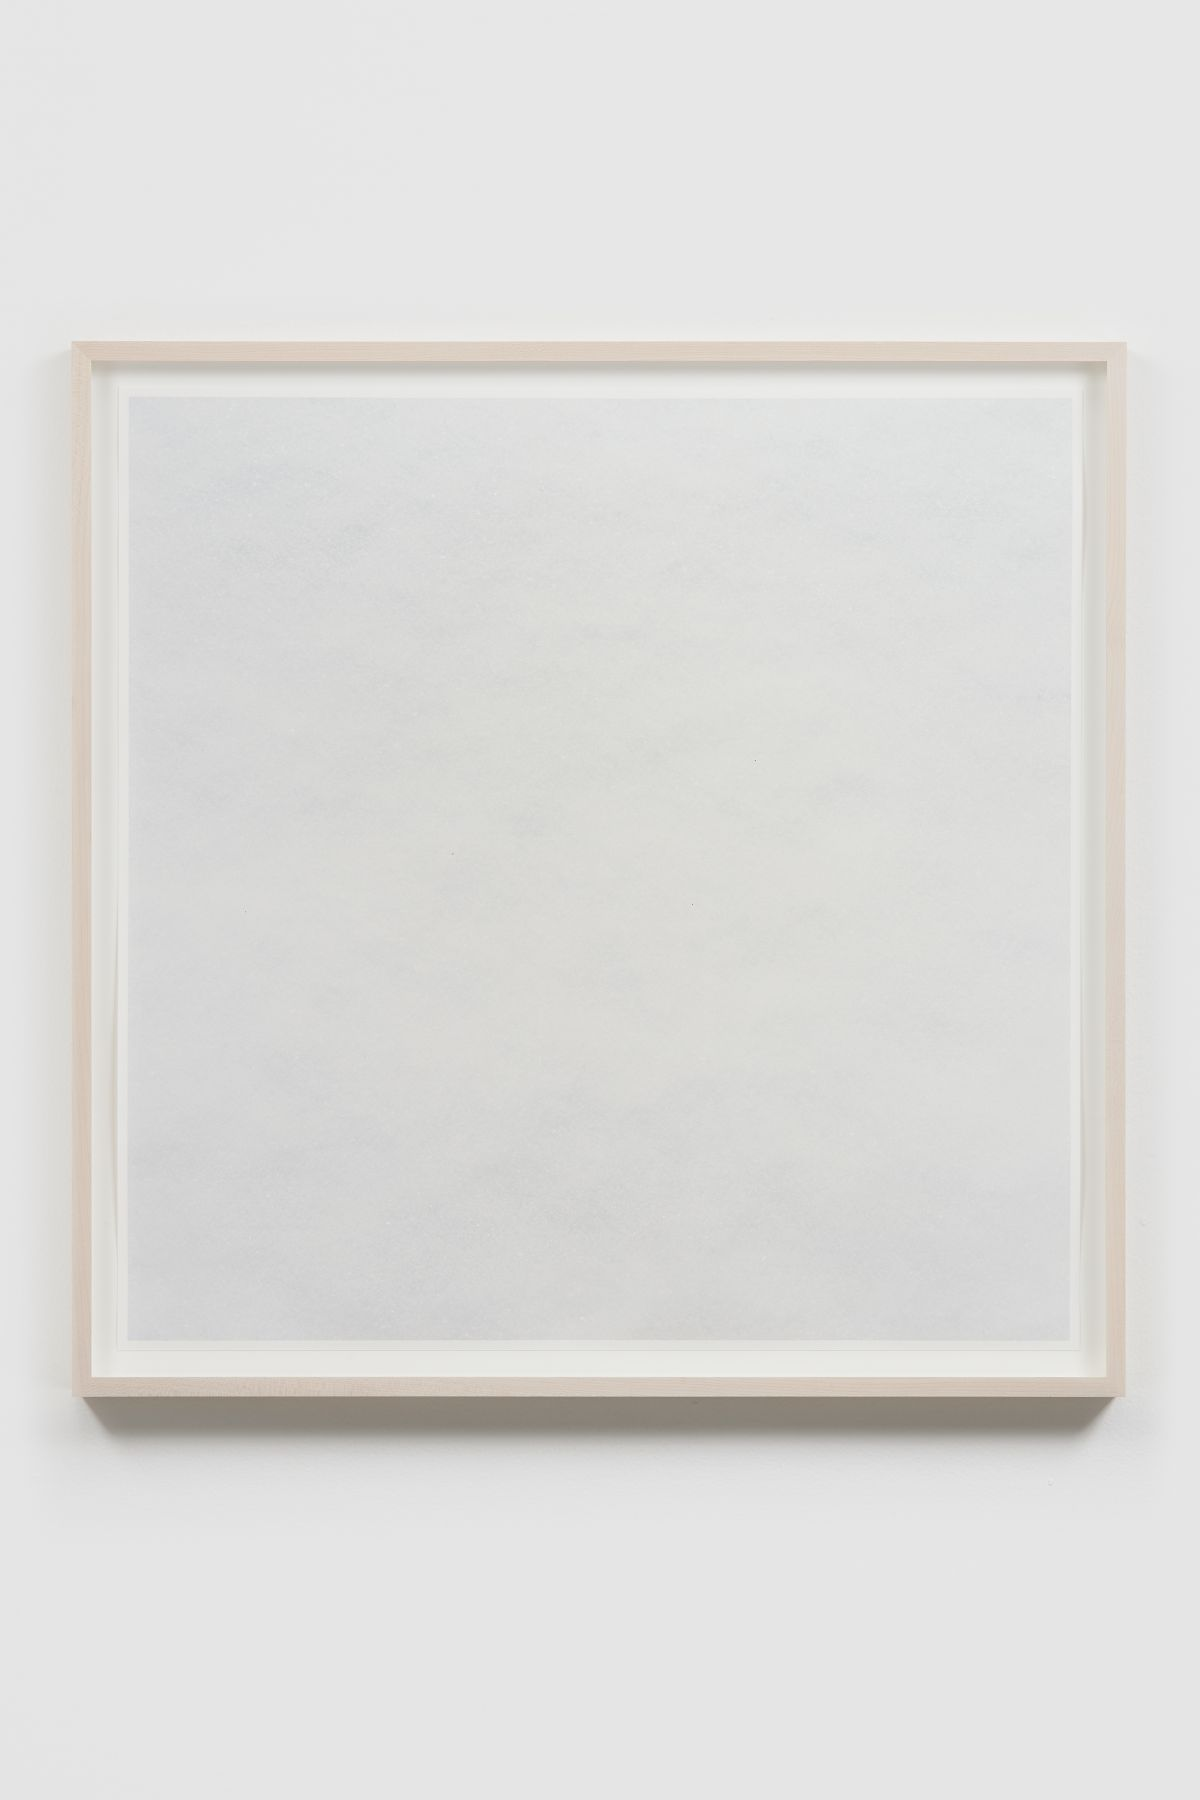 SPENCER FINCH, The Impossibility of White (snow)